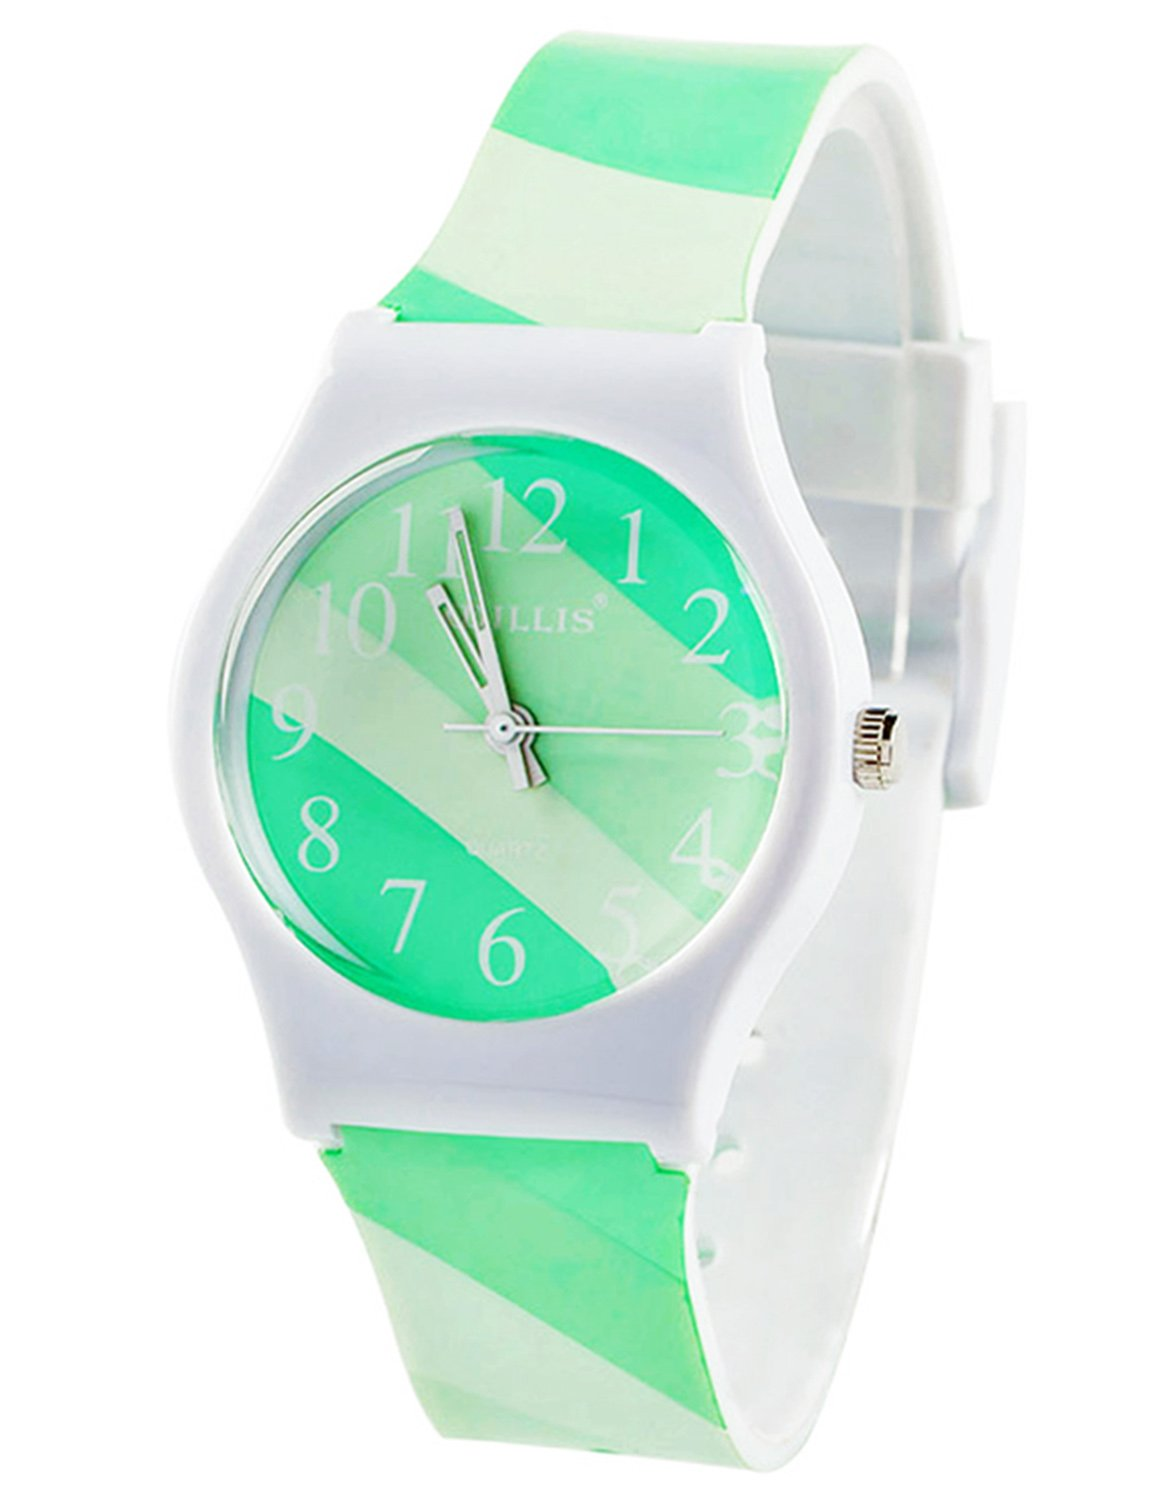 Tonnier Watches Resin Super Soft Band Student Watches for Teenagers Young Girls Starry (Fresh Fruit Green Stripe)